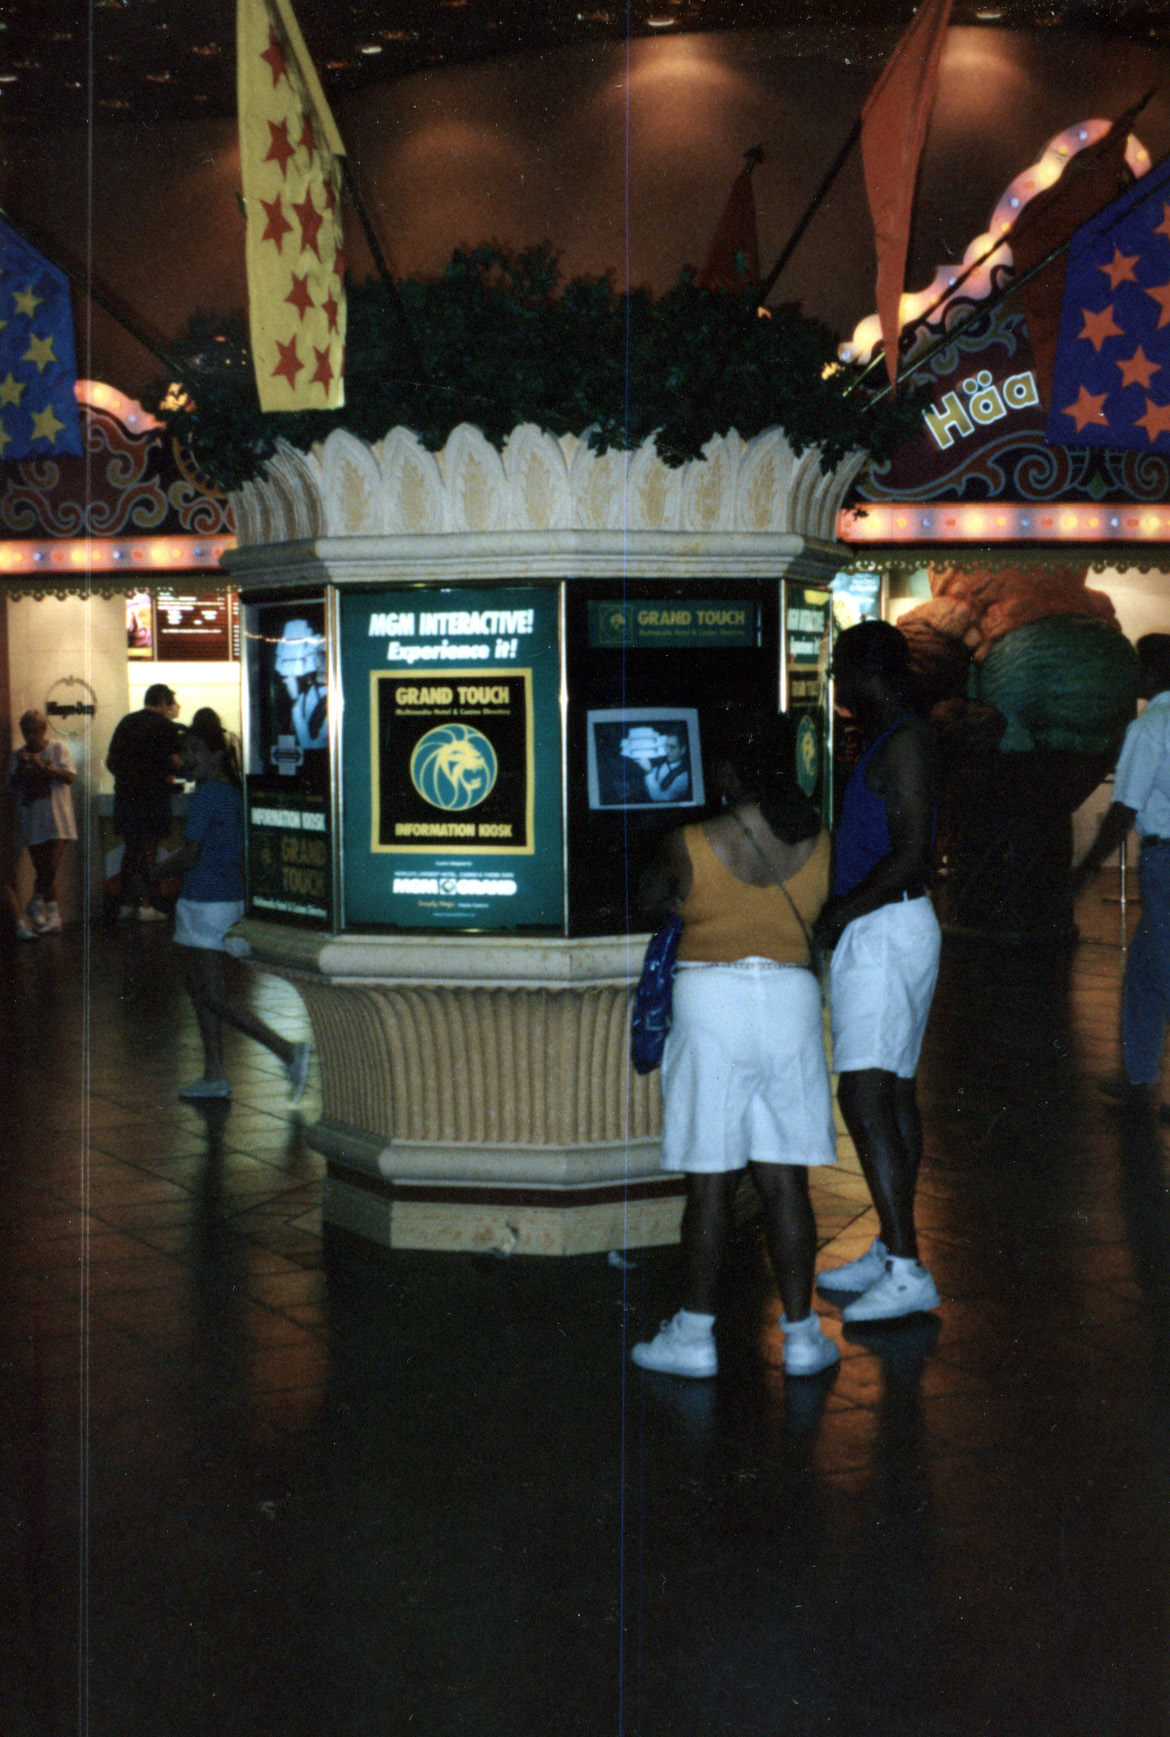 MGM Grand Touch Kiosk 1993